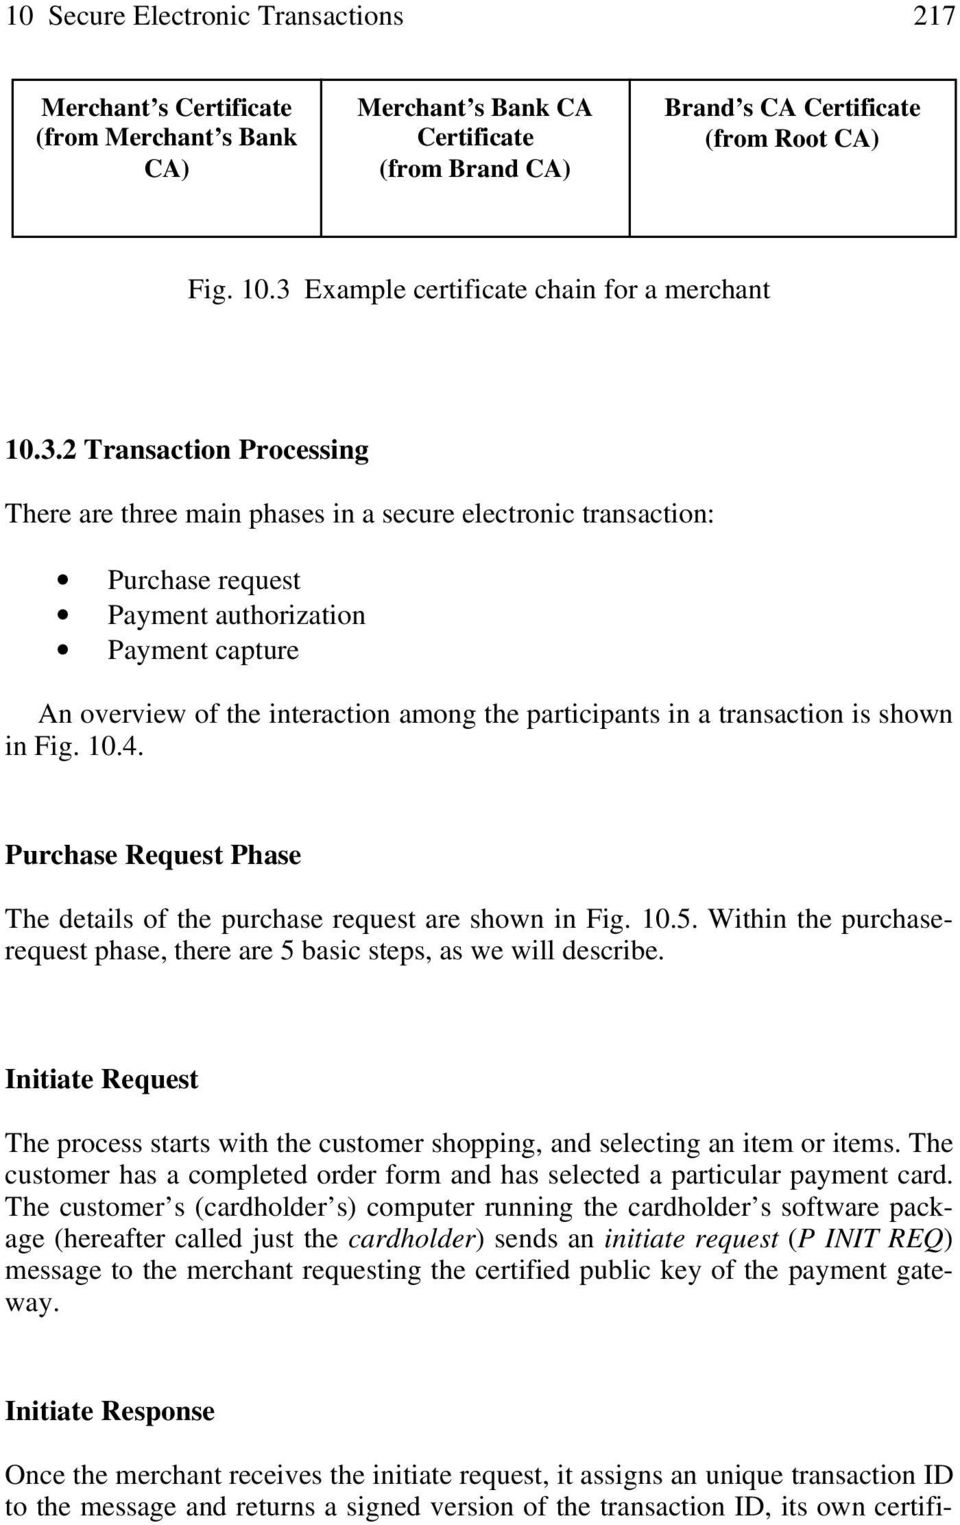 overview of the interaction among the participants in a transaction is shown in Fig. 10.4. Purchase Request Phase The details of the purchase request are shown in Fig. 10.5.